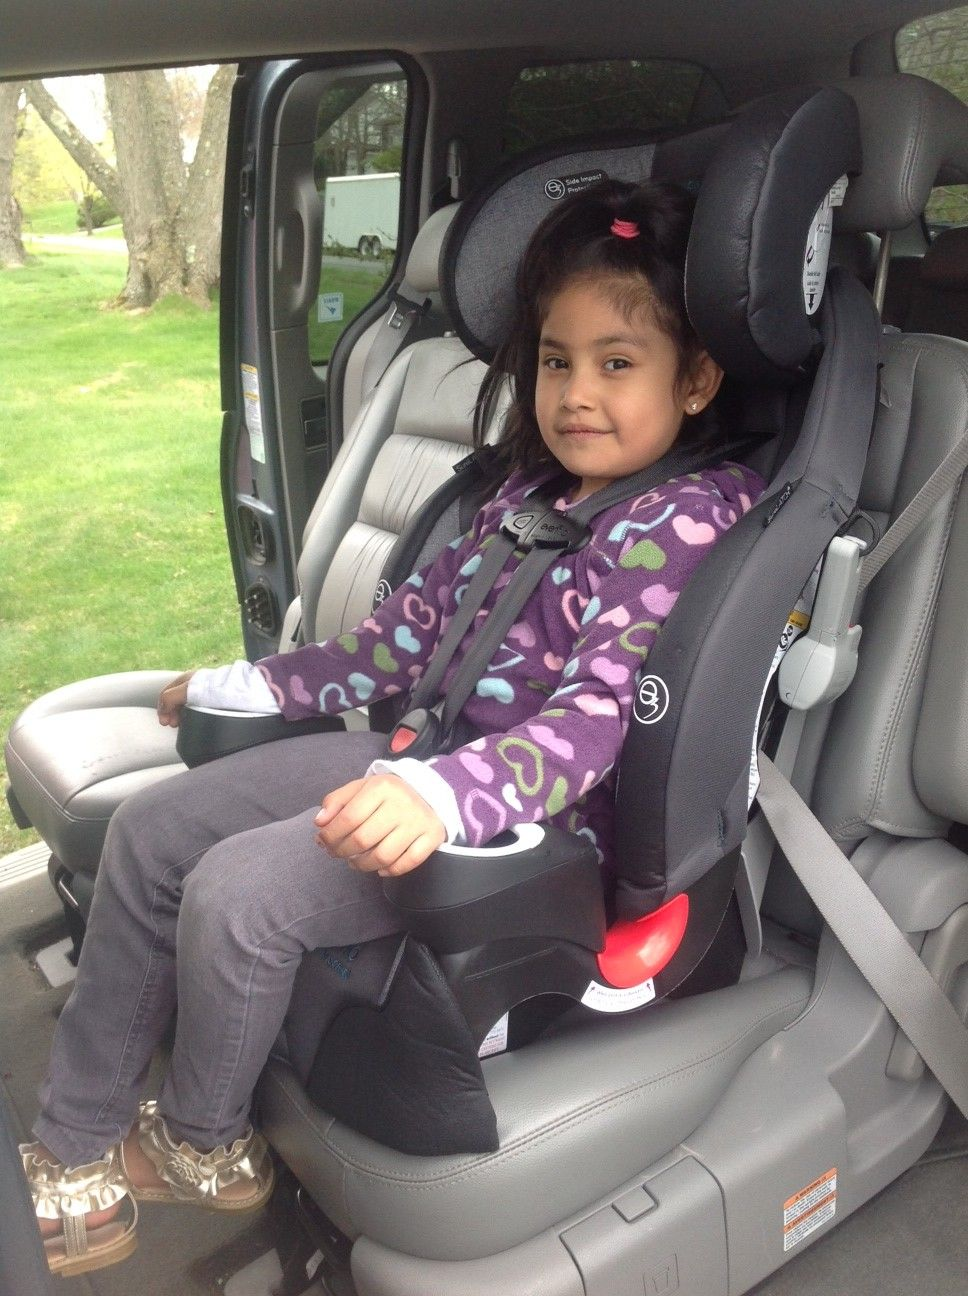 Nj Laws On Carseats